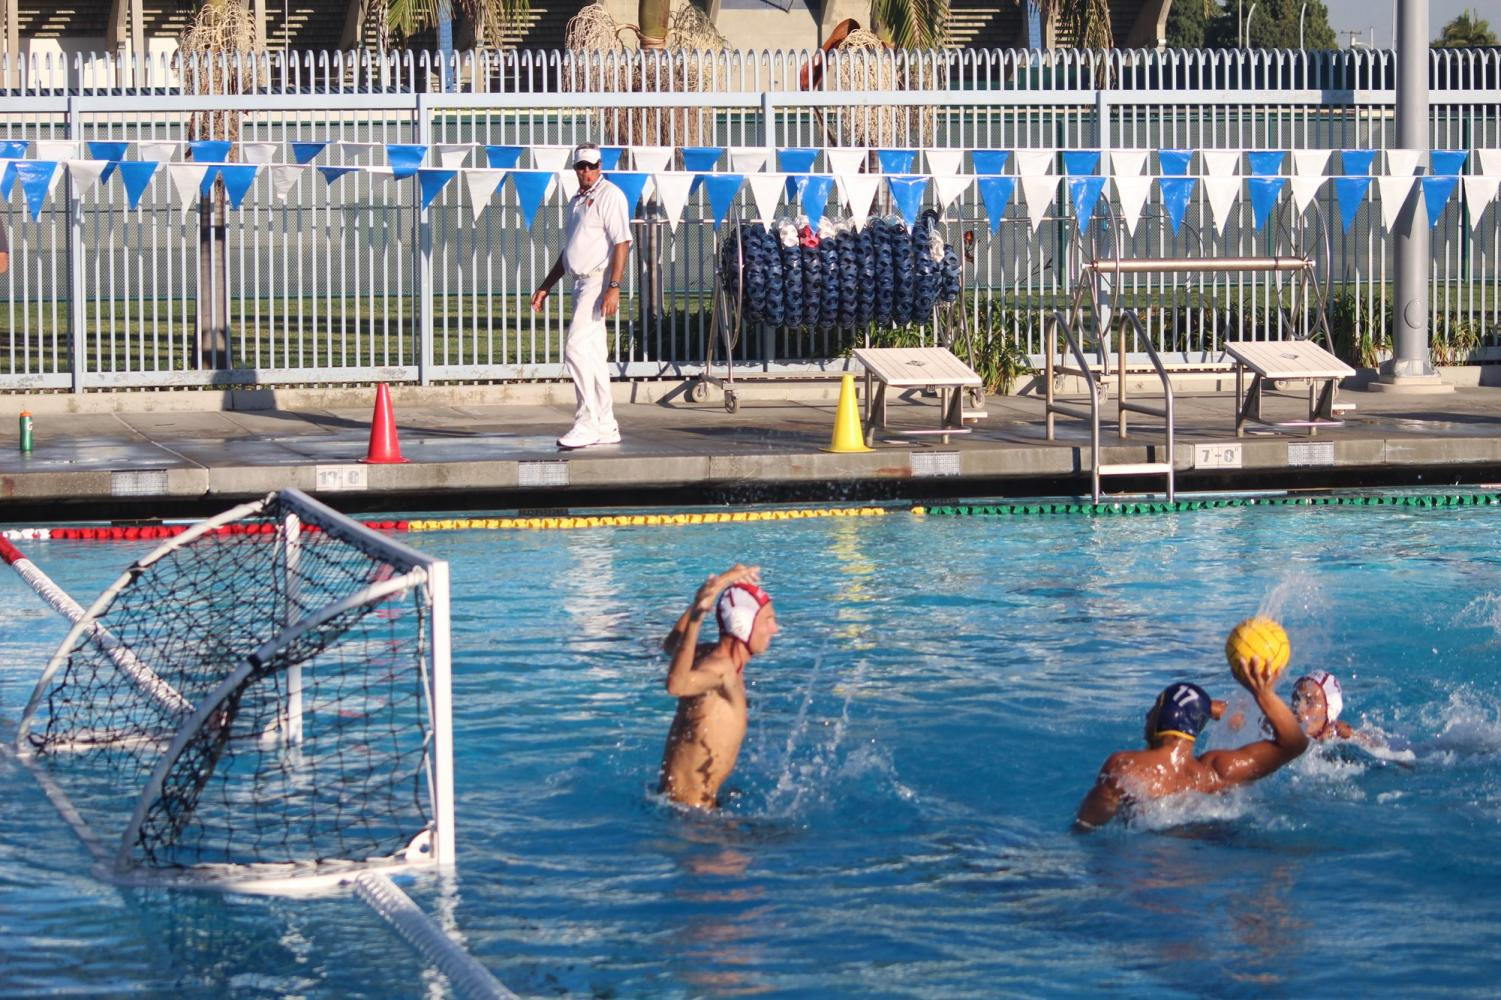 Freshman driver No. 17 Kevin Elizarraraz attempting to shoot through the goalkeeper. Elizarraraz scored four goals and had one assist in the game against Mt. San Antonio College at Cerritos College on Oct. 17, 2018.